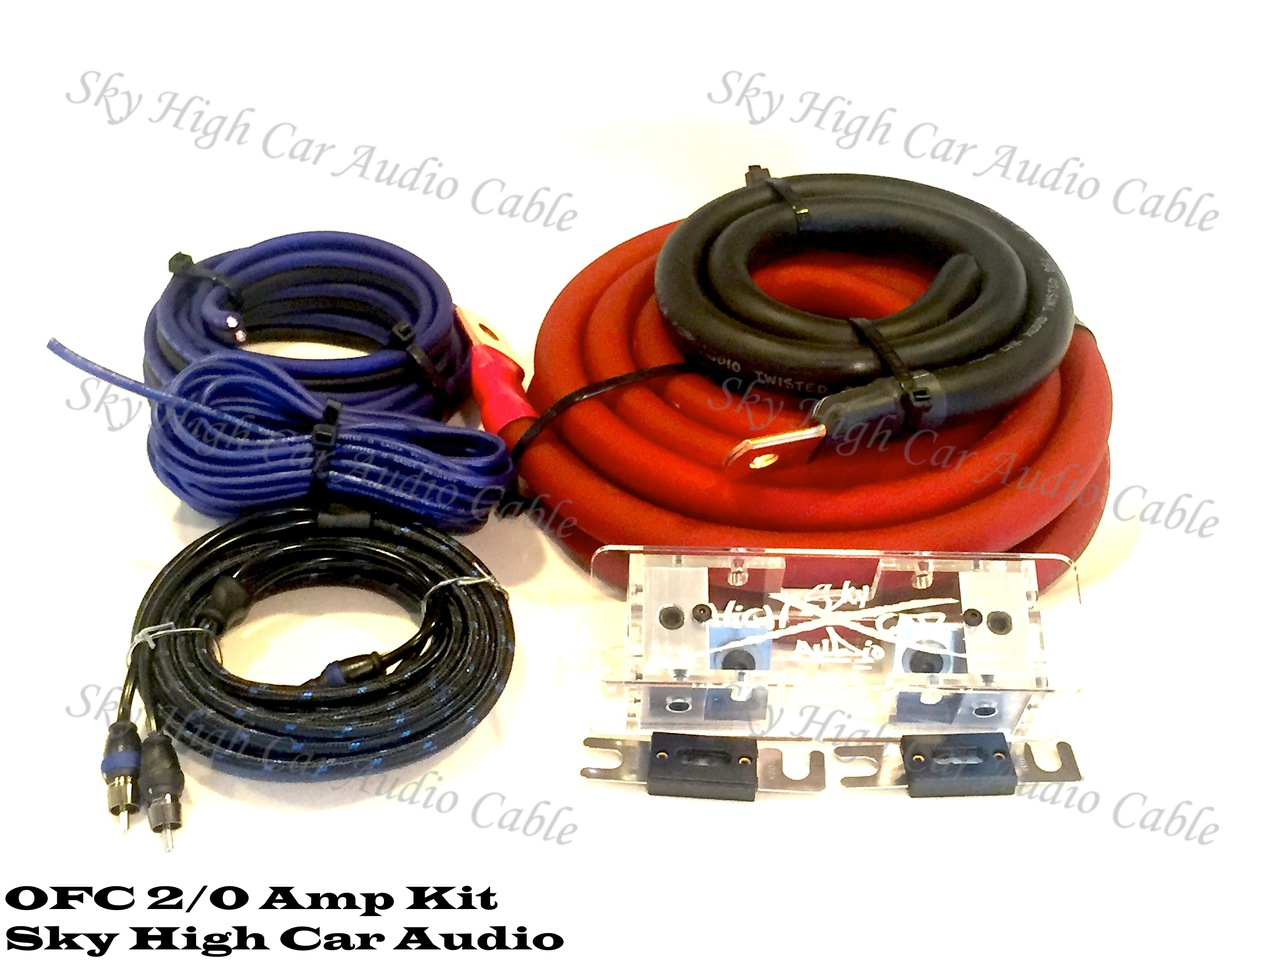 Sky High Car Audio 2 0 Ofc Amp Kit Pro 4 Gauge Amplifier Install Wiring Complete Cables